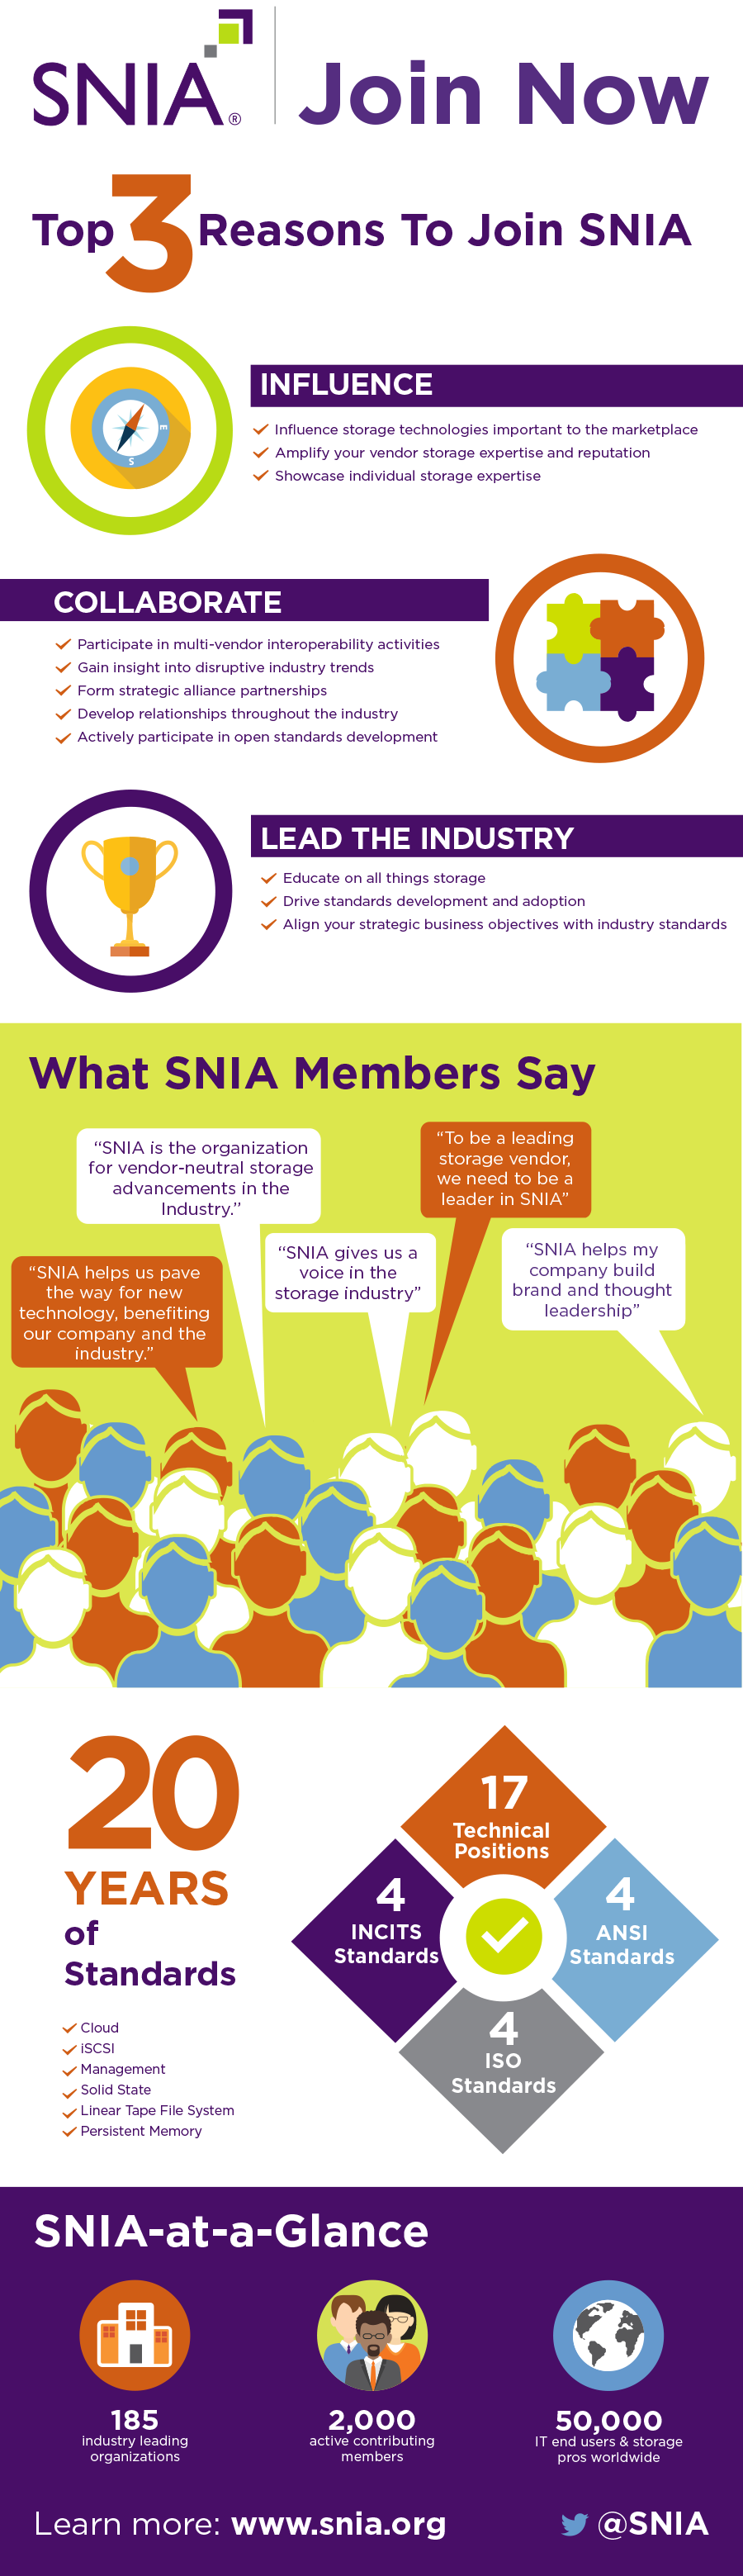 Top 3 Reasons to Join SNIA